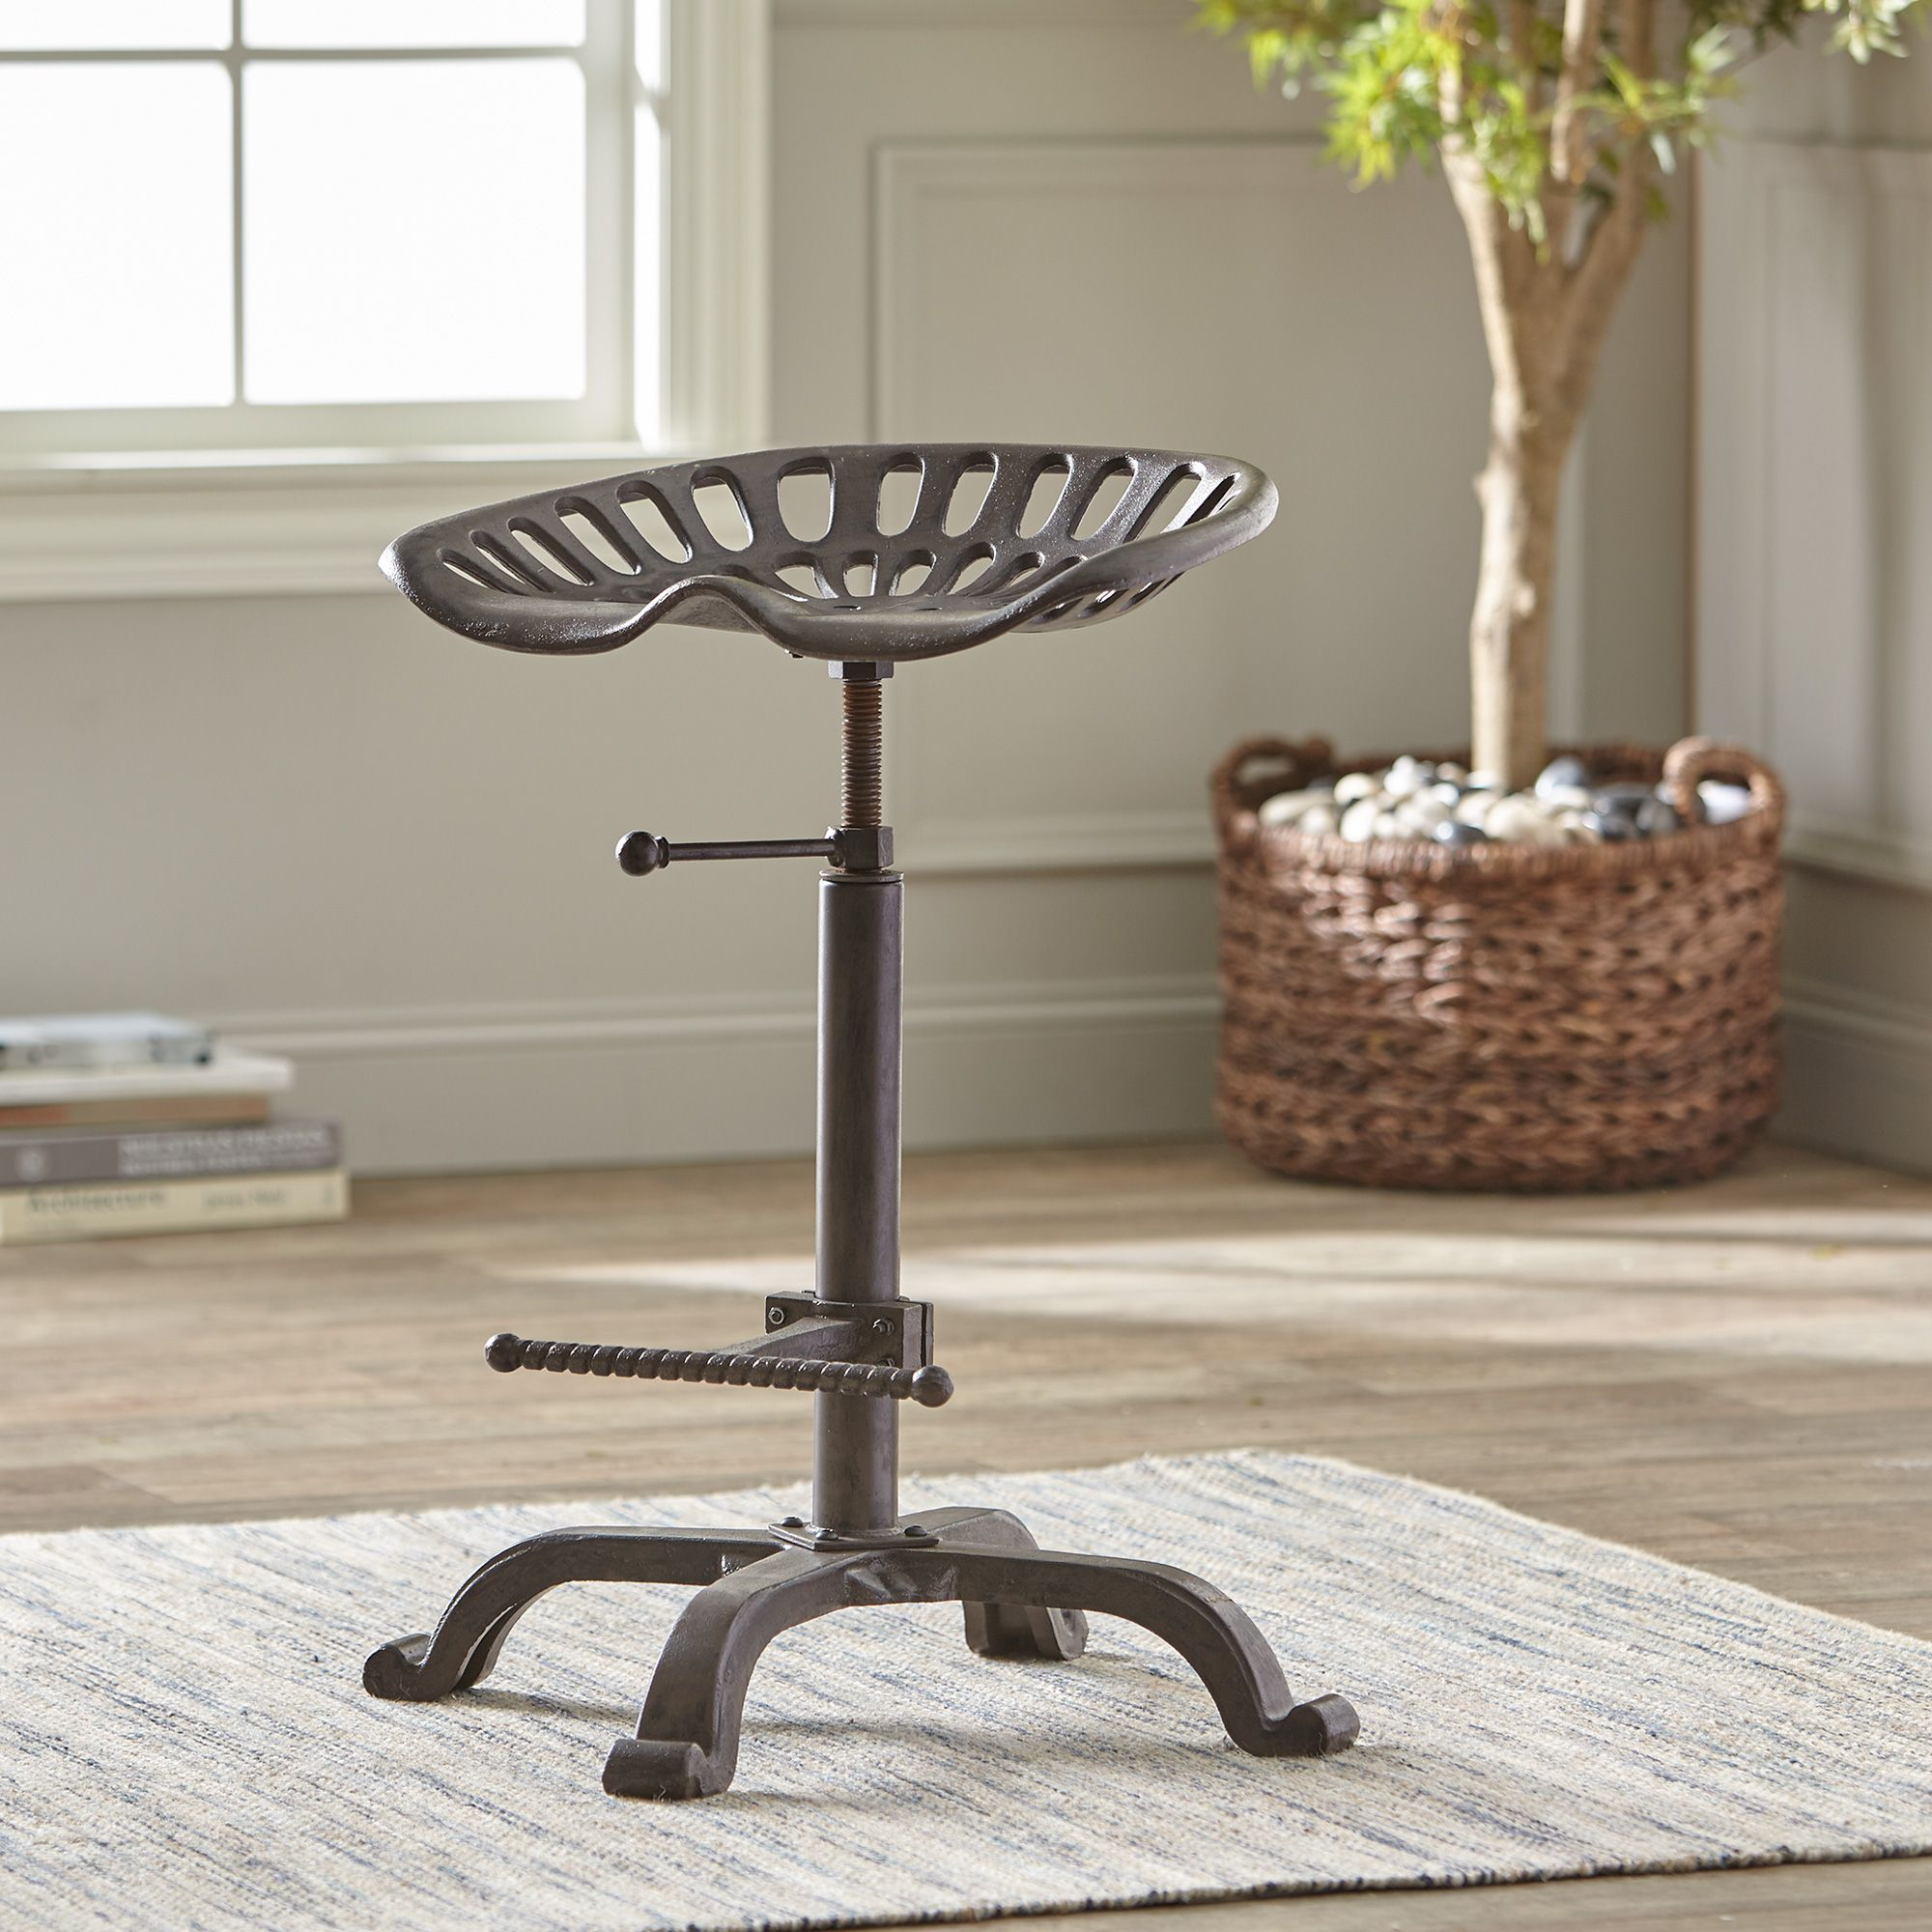 Extra-Large Farmhouse Adjustable Swivel Tractor Seat Bar Stool — Antique Iron | www.kotulas.com | Free Shipping